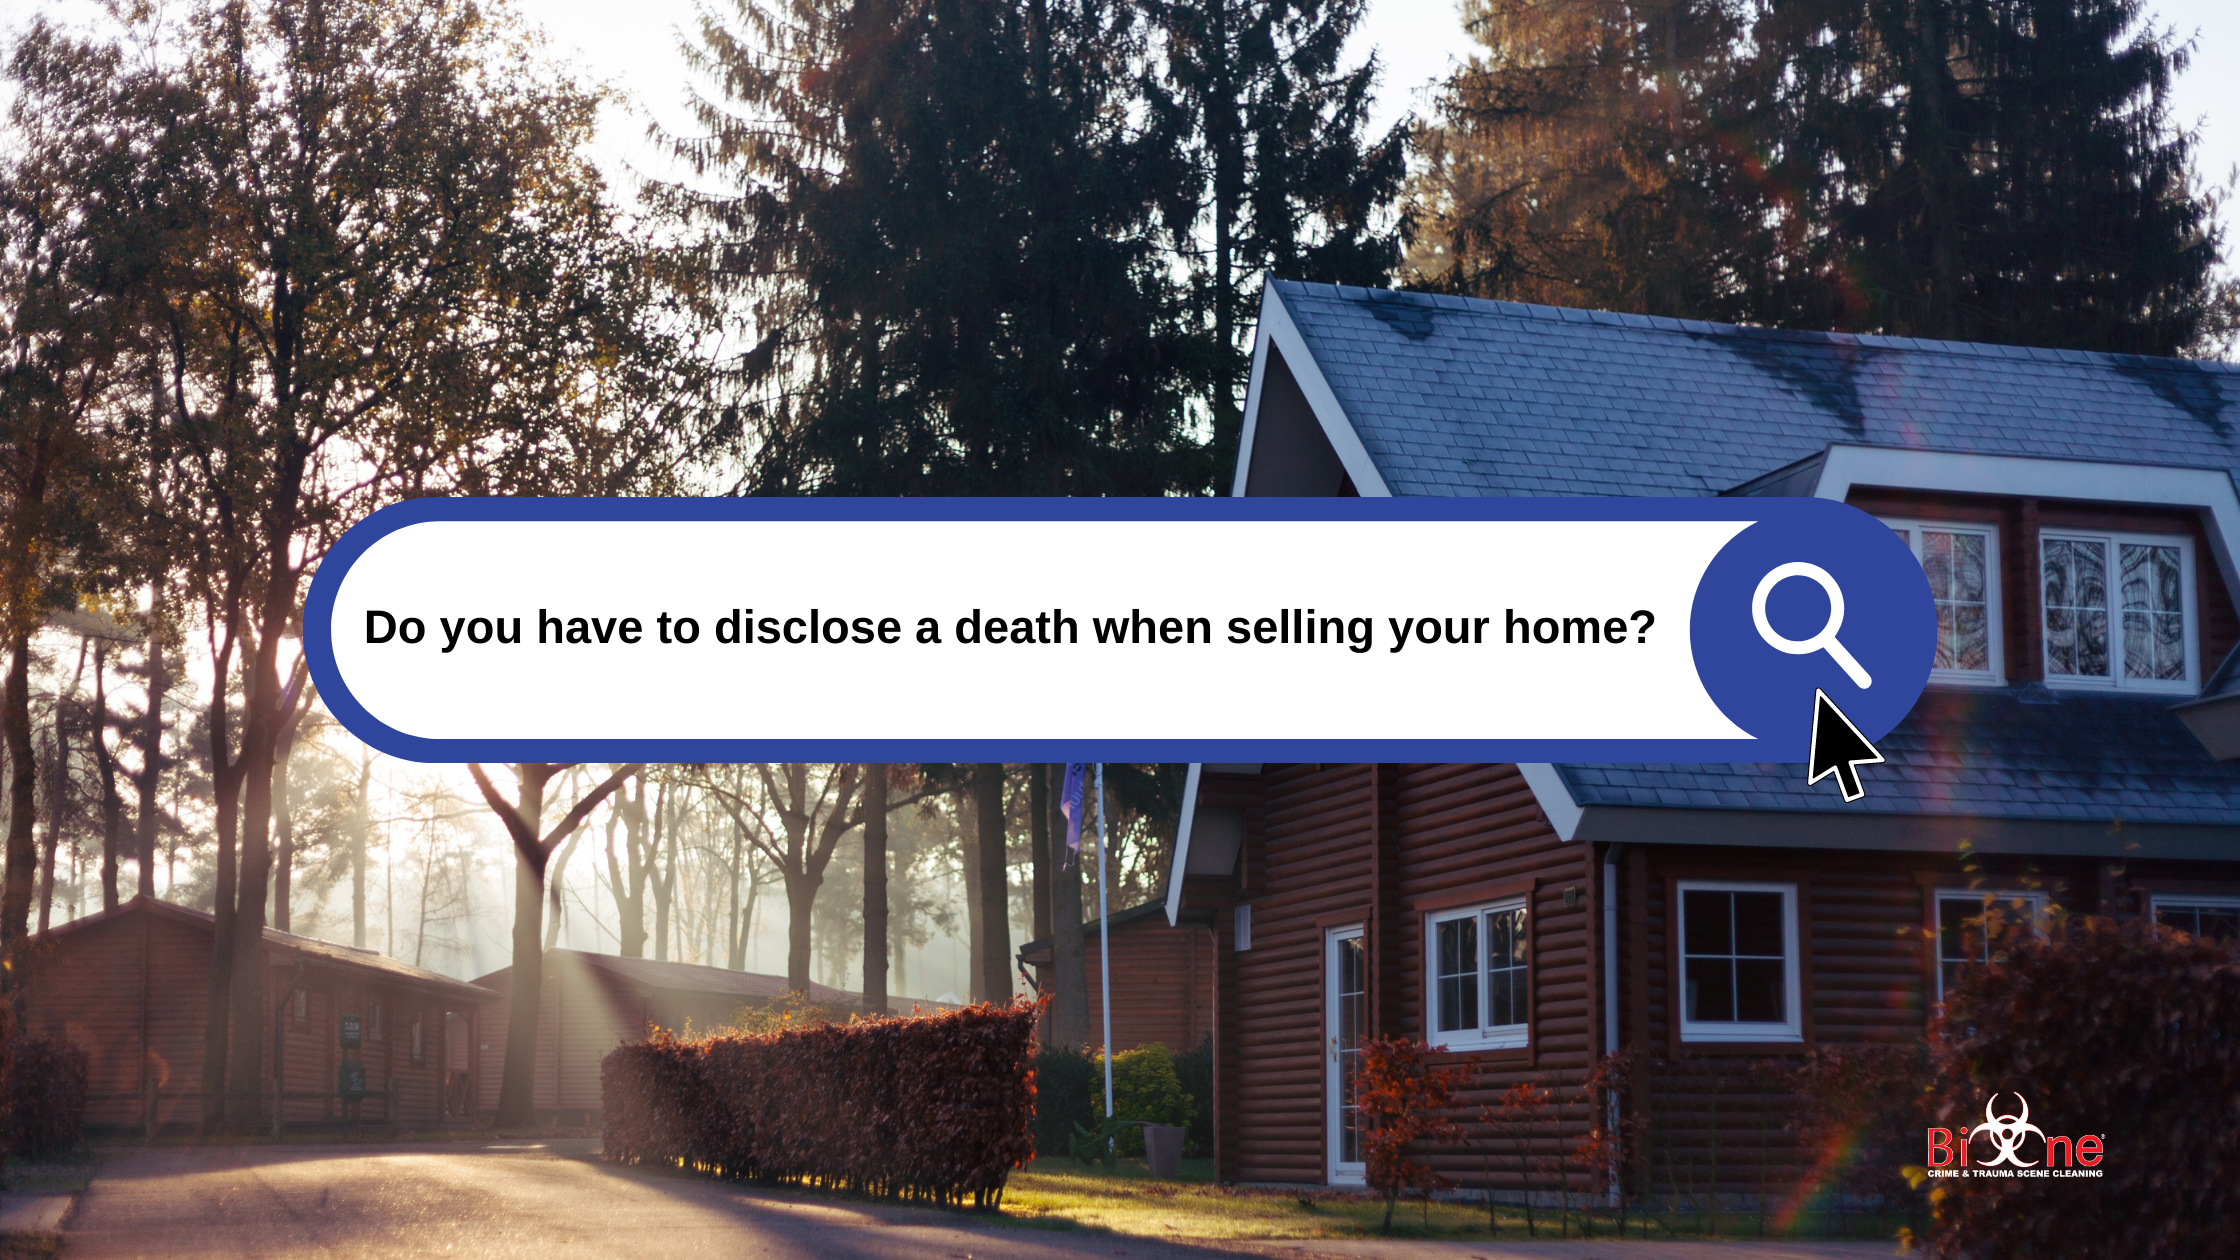 Disclosing death when selling a home in North Carolina